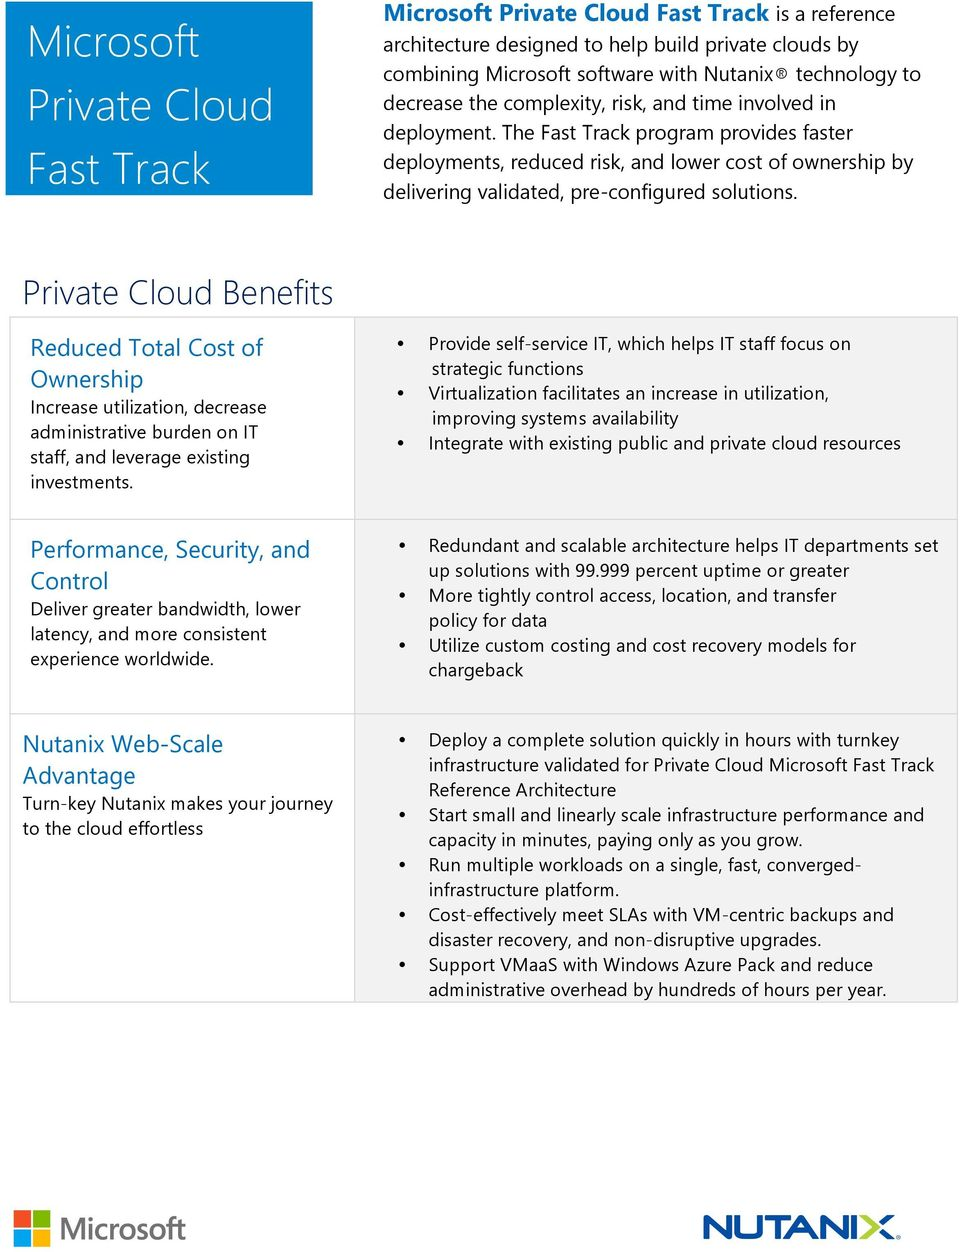 The Fast Track program provides faster deployments, reduced risk, and lower cost of ownership by delivering validated, pre- configured solutions.